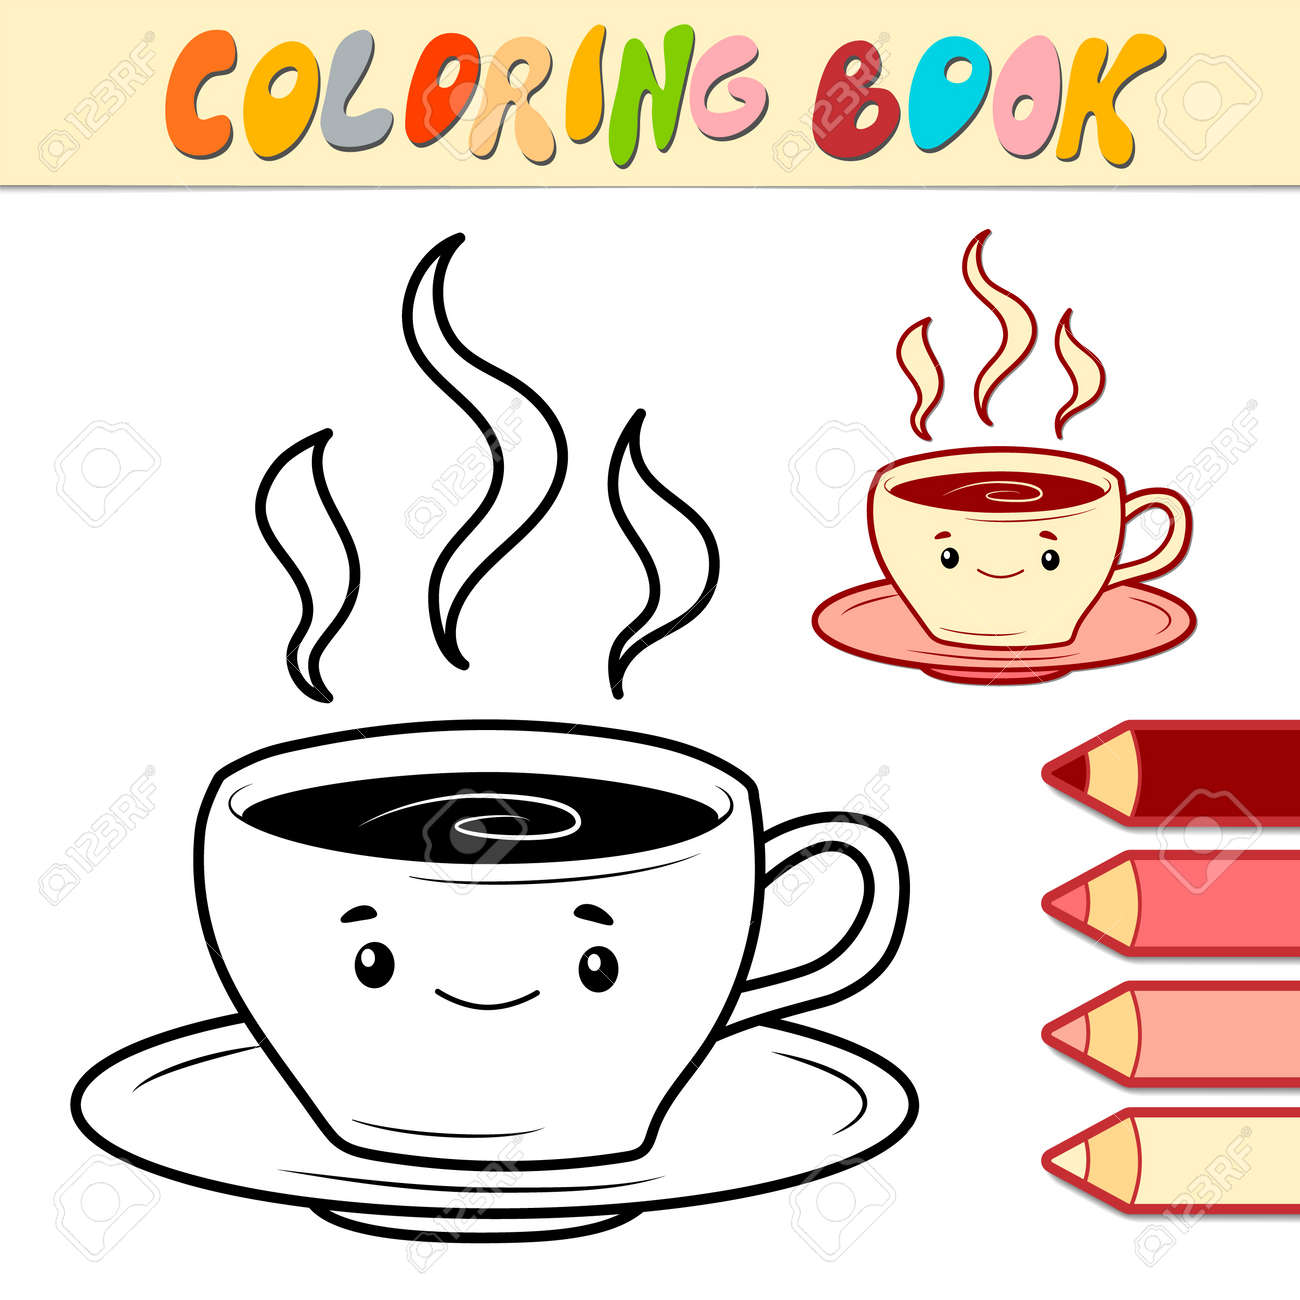 Coloring book or page for kids. cup black and white vector illustration - 168779500